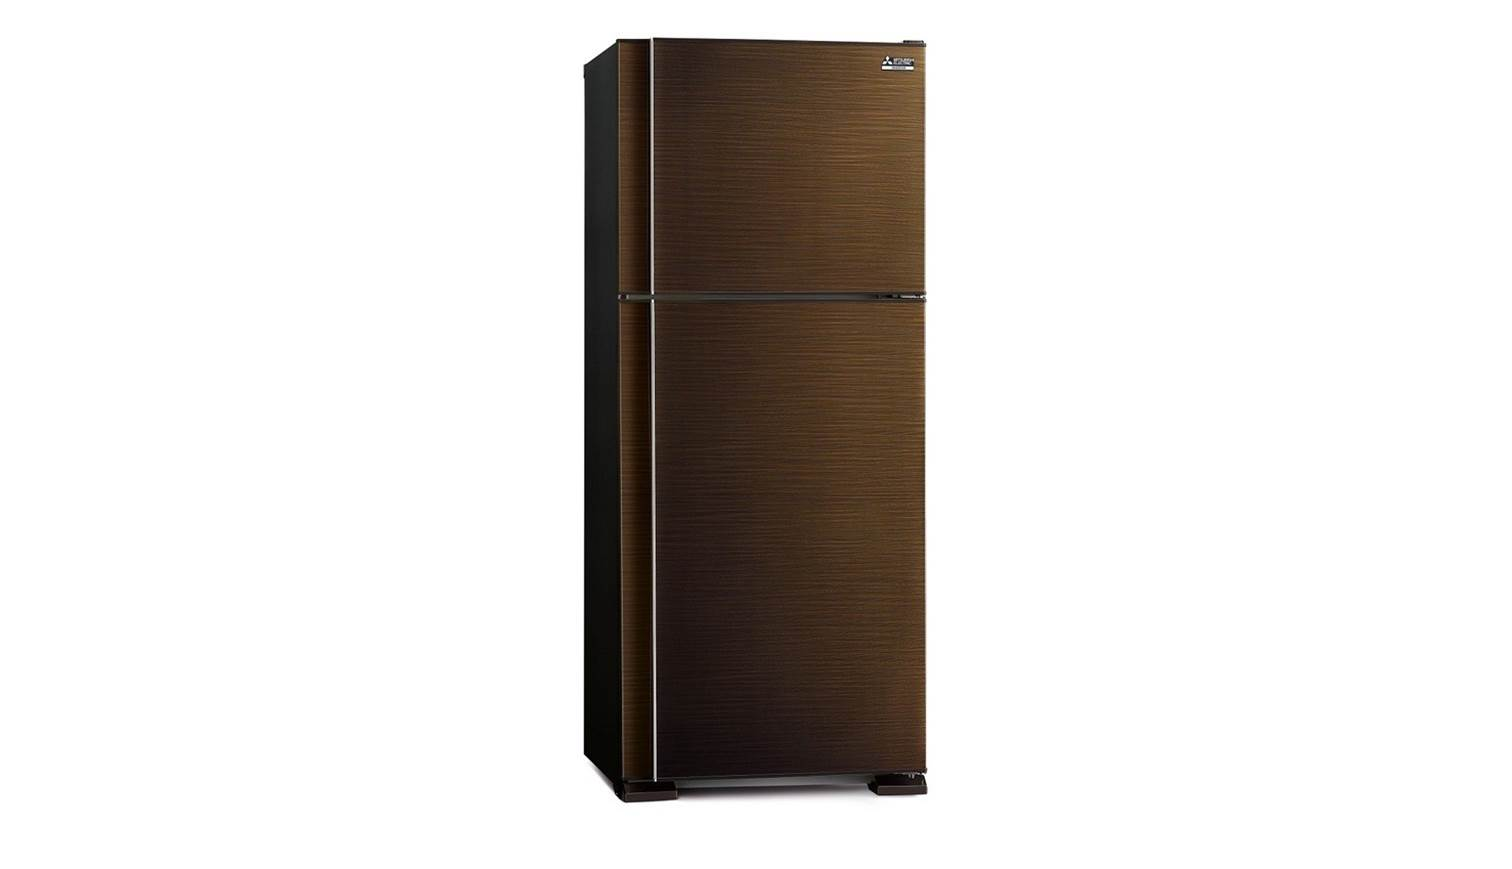 Meister Proper Küche Refrigerator Fridge Mini Fridge Freezer Samsung Fridge